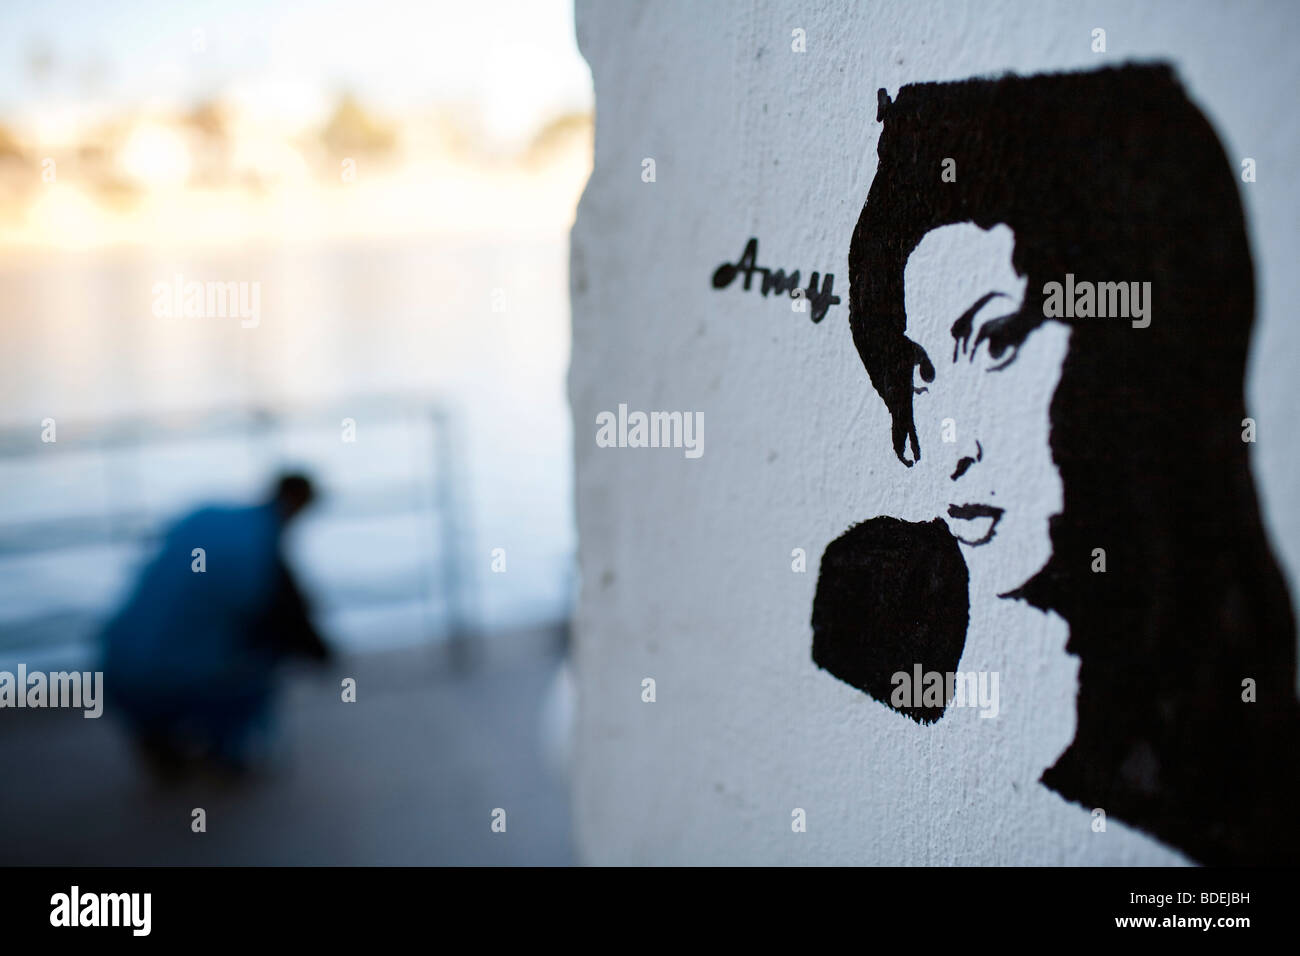 Stencil graffiti depicting Amy Winehouse, Betis street, Seville, Andalusia, Spain - Stock Image